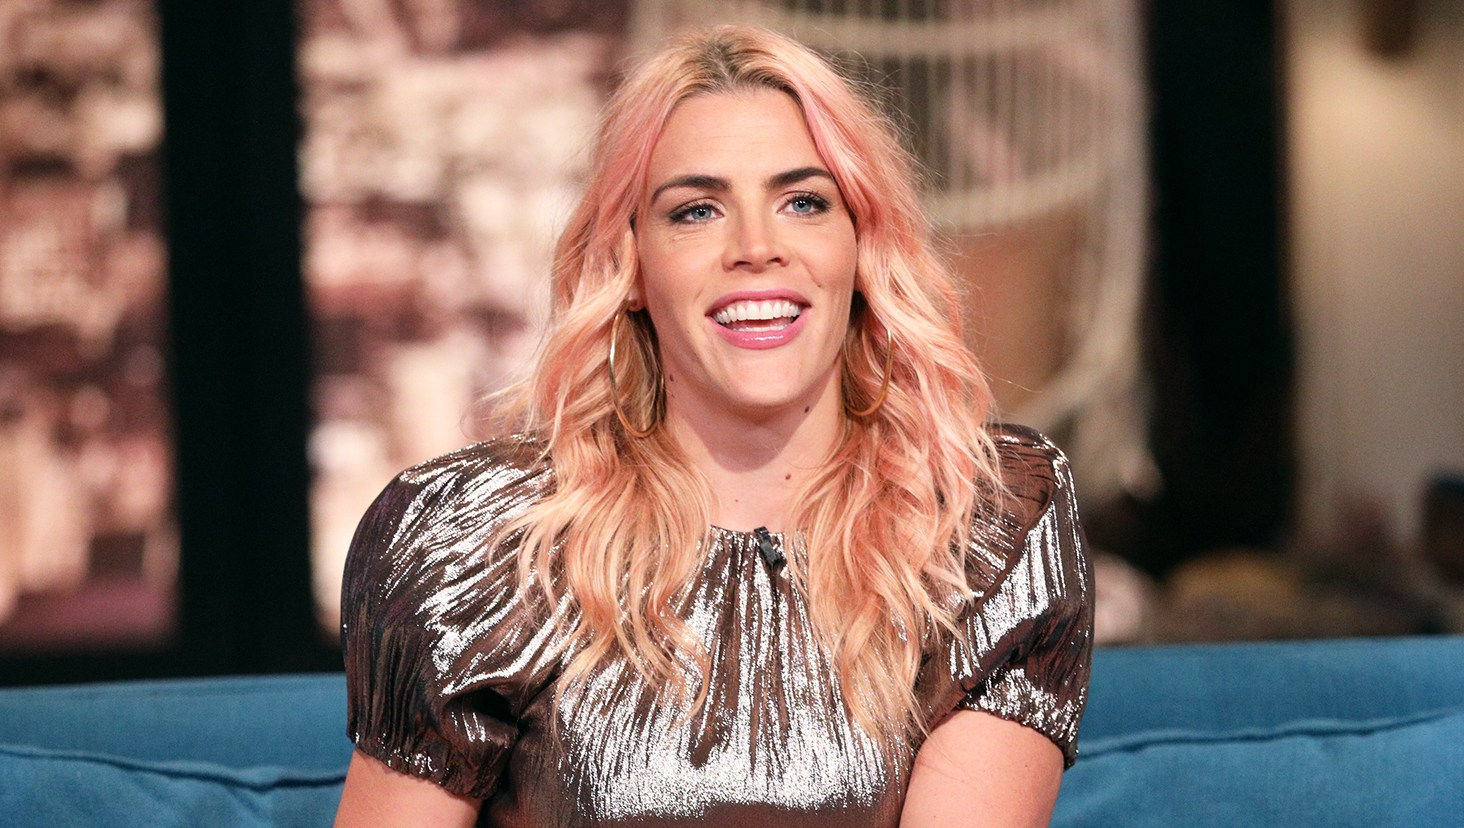 Busy Philipps Says E! 'Wasn't the Right Place' for Her